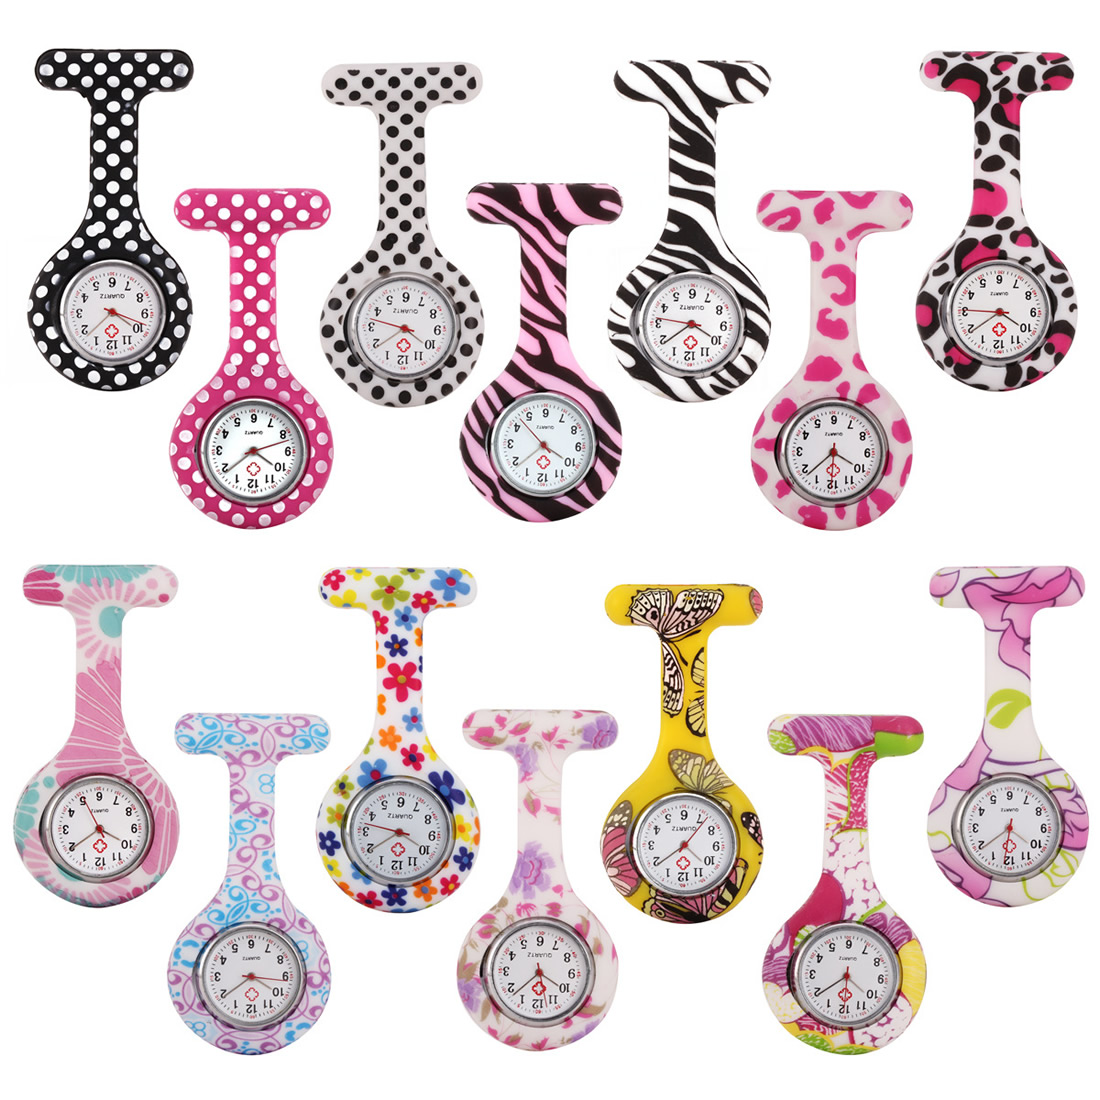 76c46bb92a9 best top 10 woman watches hanging ideas and get free shipping - n91ikm4l